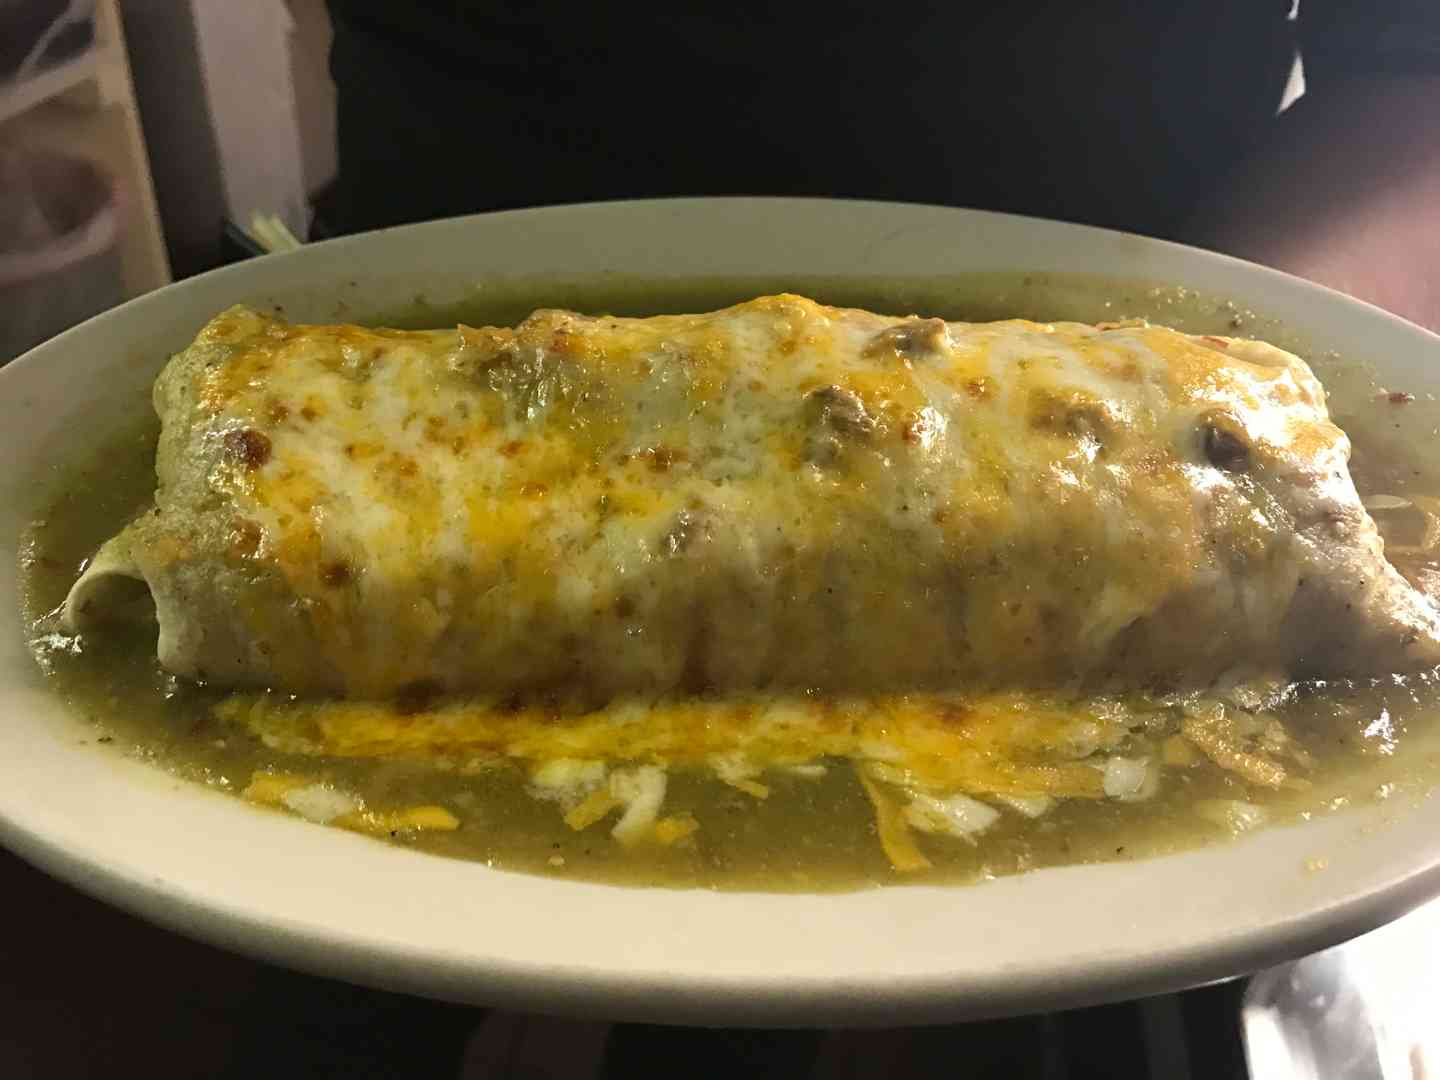 Meat Burrito - Pork